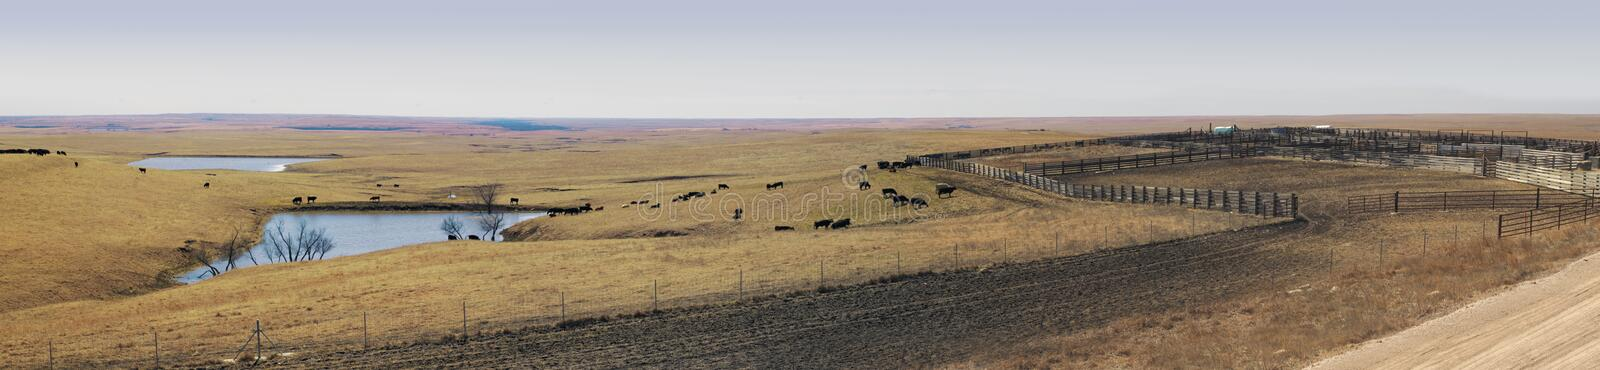 Panoramic Vista of great plains ranching. Prairie life shown with cattle grazing, several small ponds, muddy tracks, and cattle pens. Site for loading cattle royalty free stock image